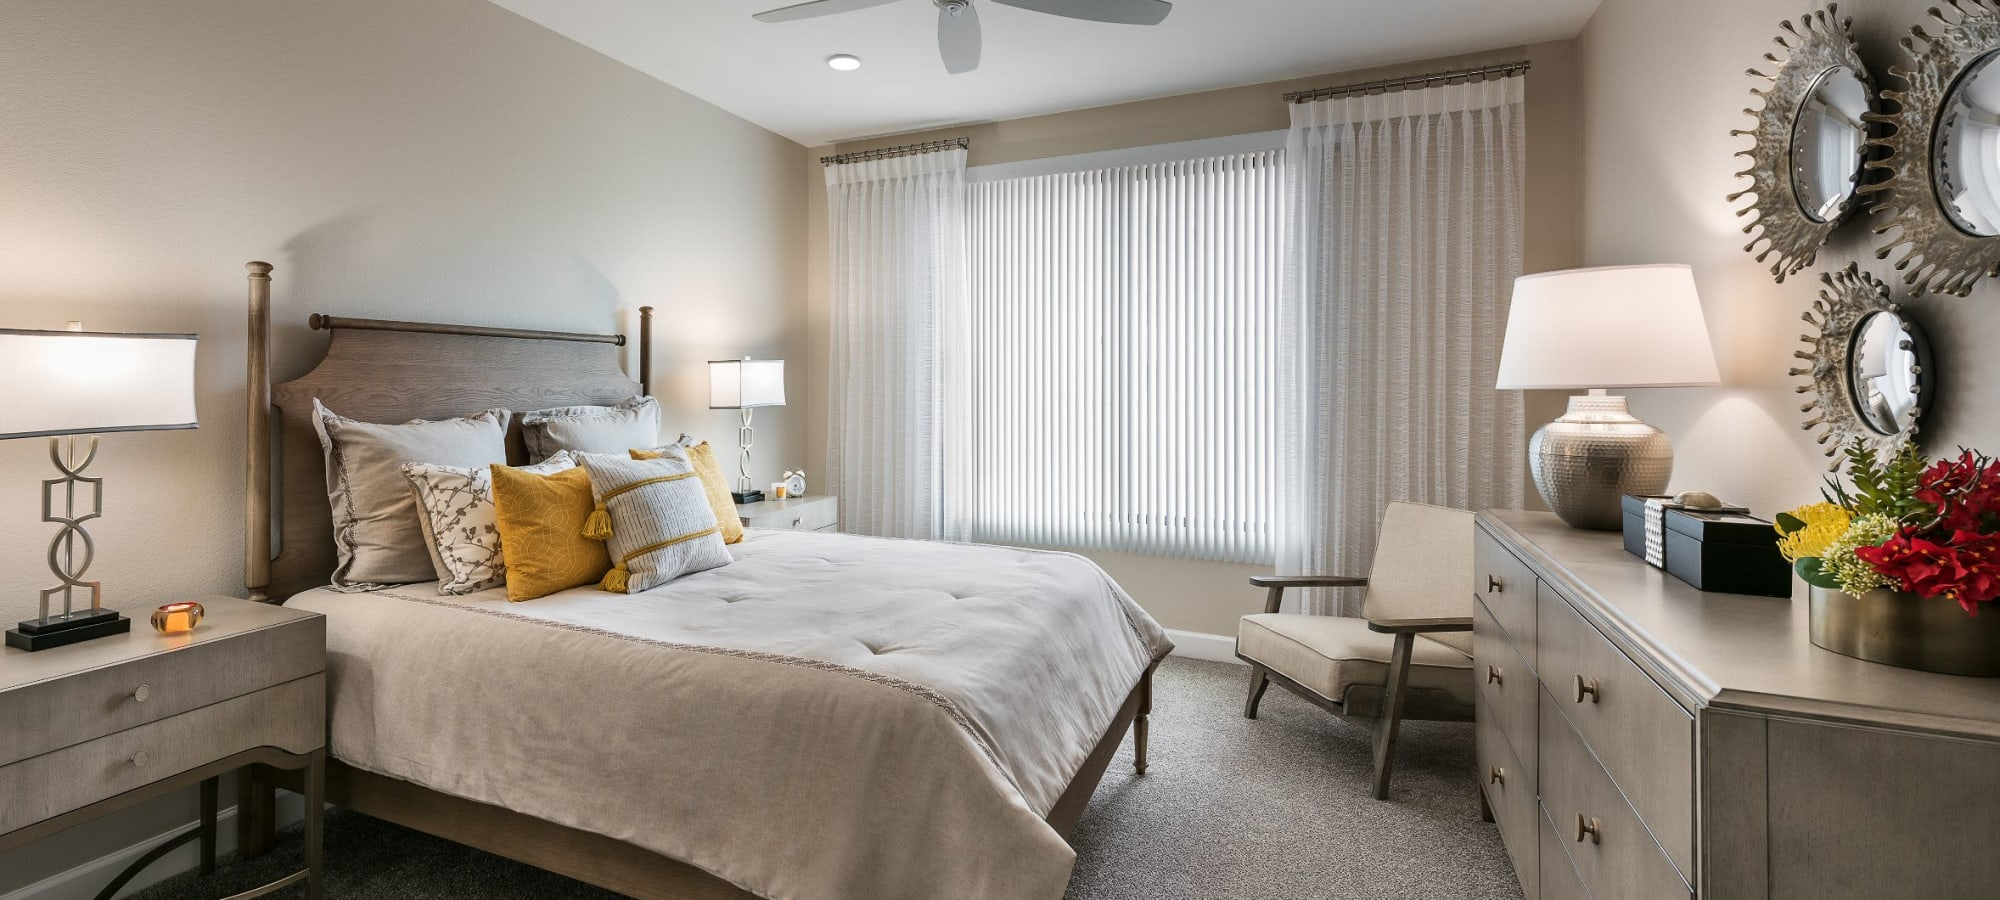 Bedroom with a large window at San Artes in Scottsdale, Arizona